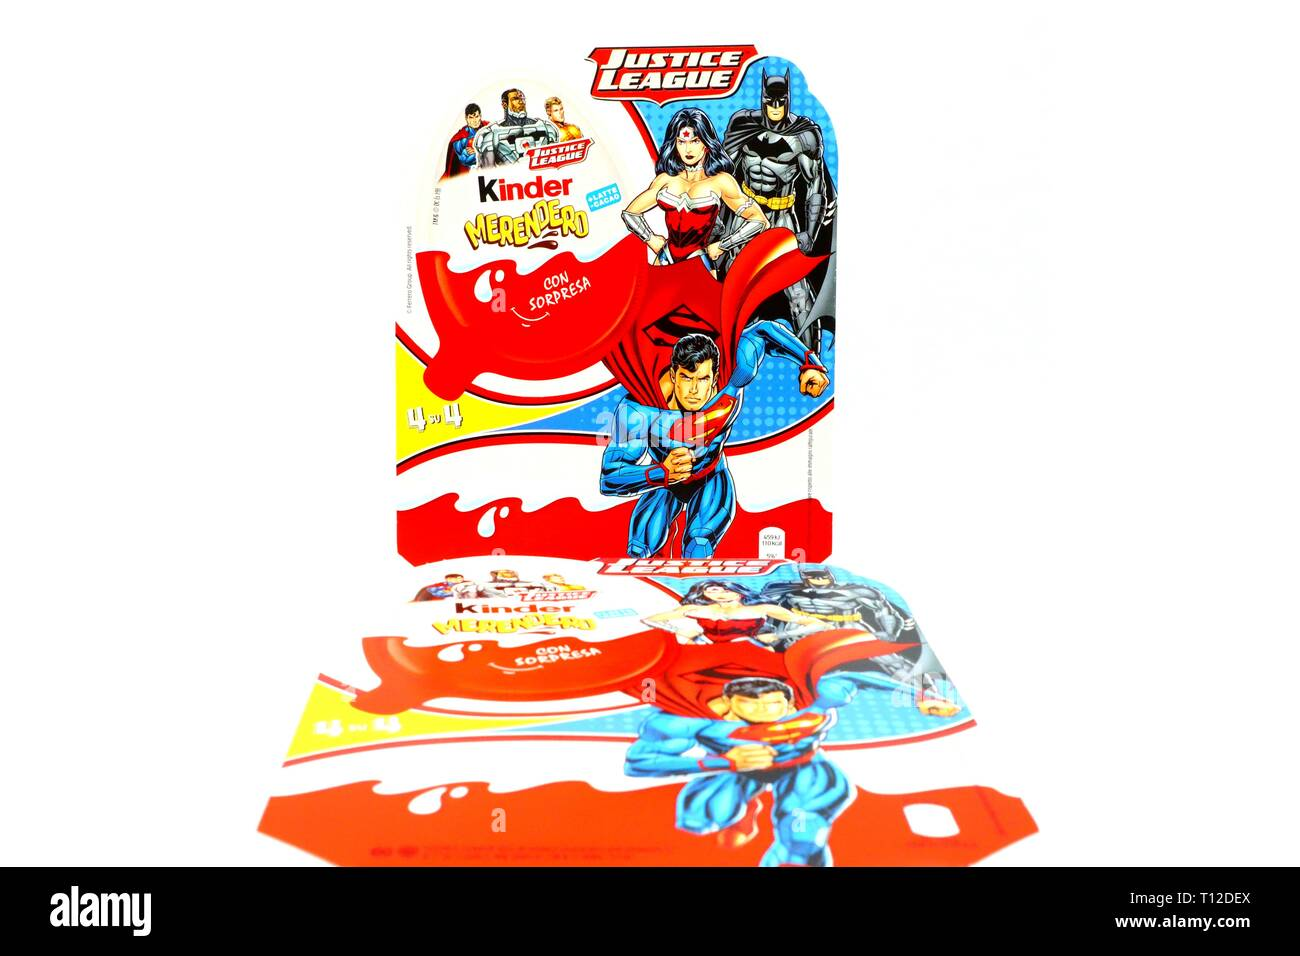 Kinder JOY Merendero JUSTICE LEAGUE Chocolate Eggs. Kinder is a brand of  Ferrero, Justice League is a Trademark of DC Comic WB SHIELD WBEI - Stock Image